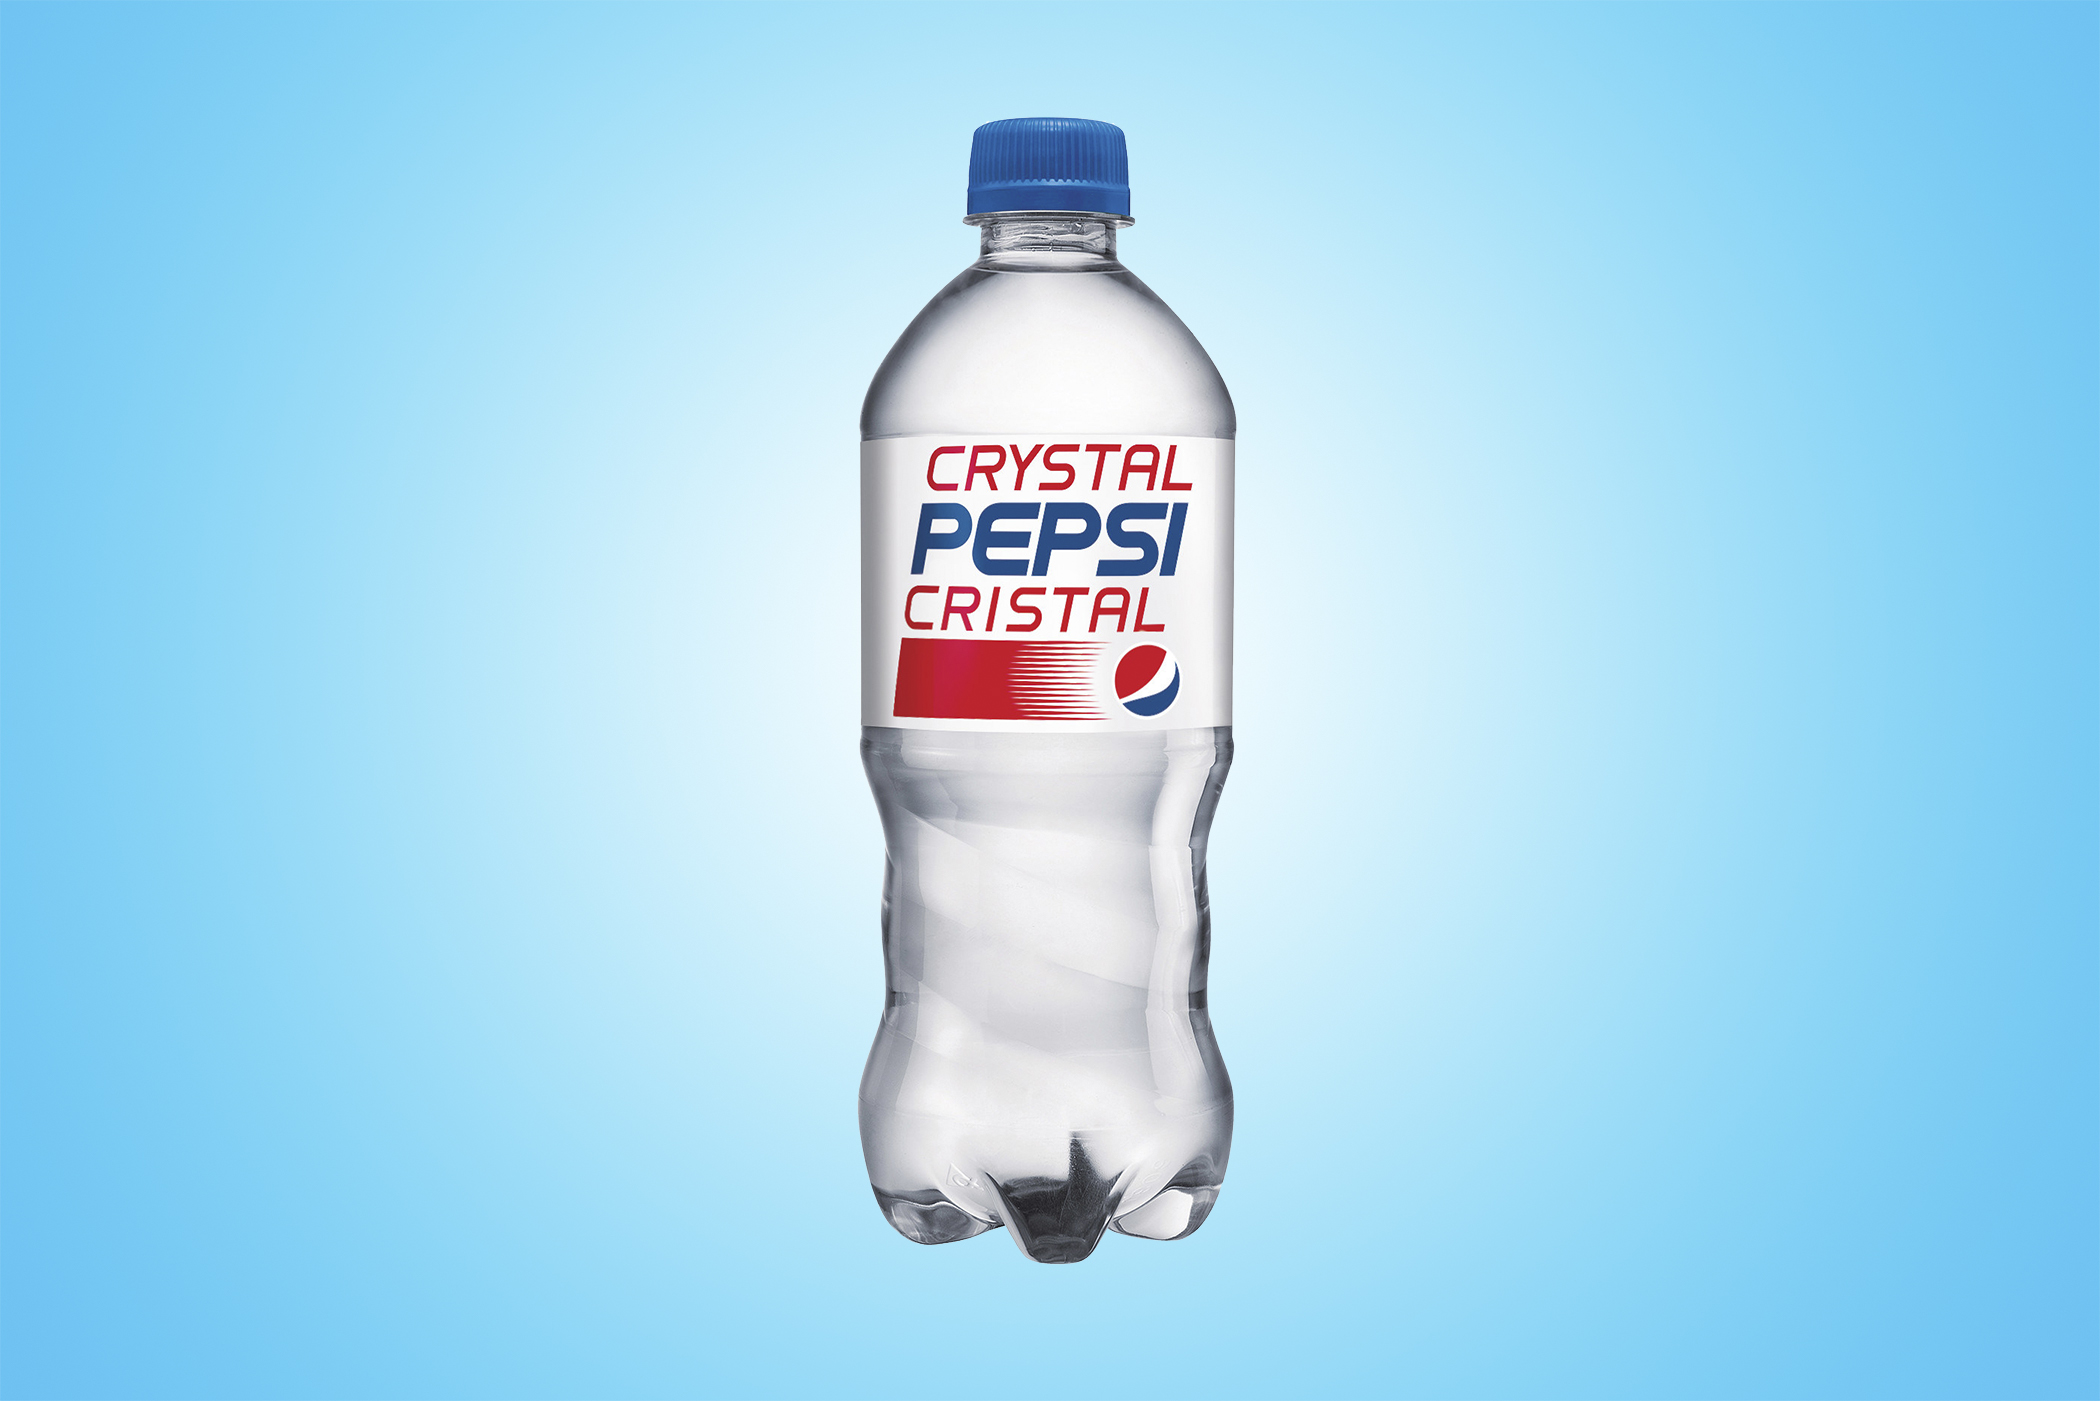 Crystal Pepsi(R) - the iconic 90s clear cola - will be available for a limited time across Canada beginning July 11.